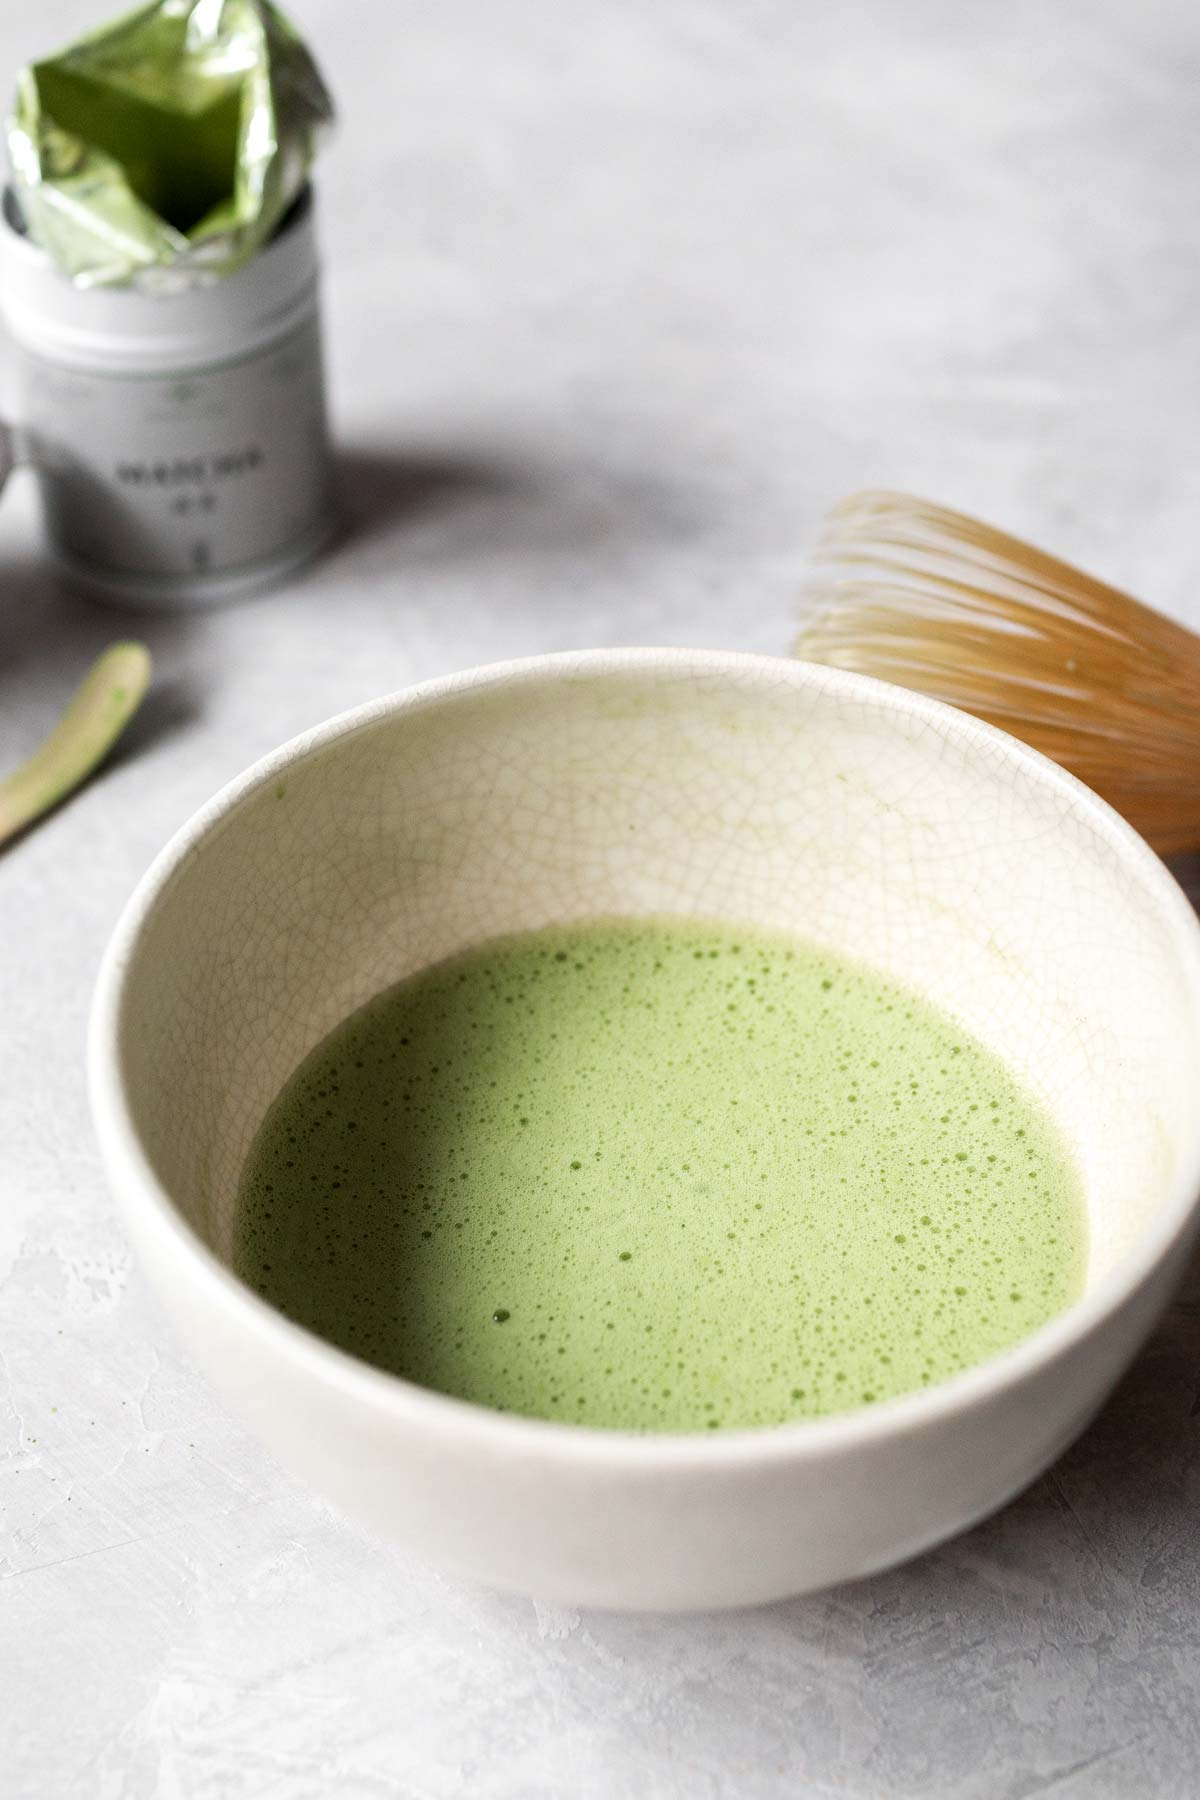 Whisked matcha in a bowl.